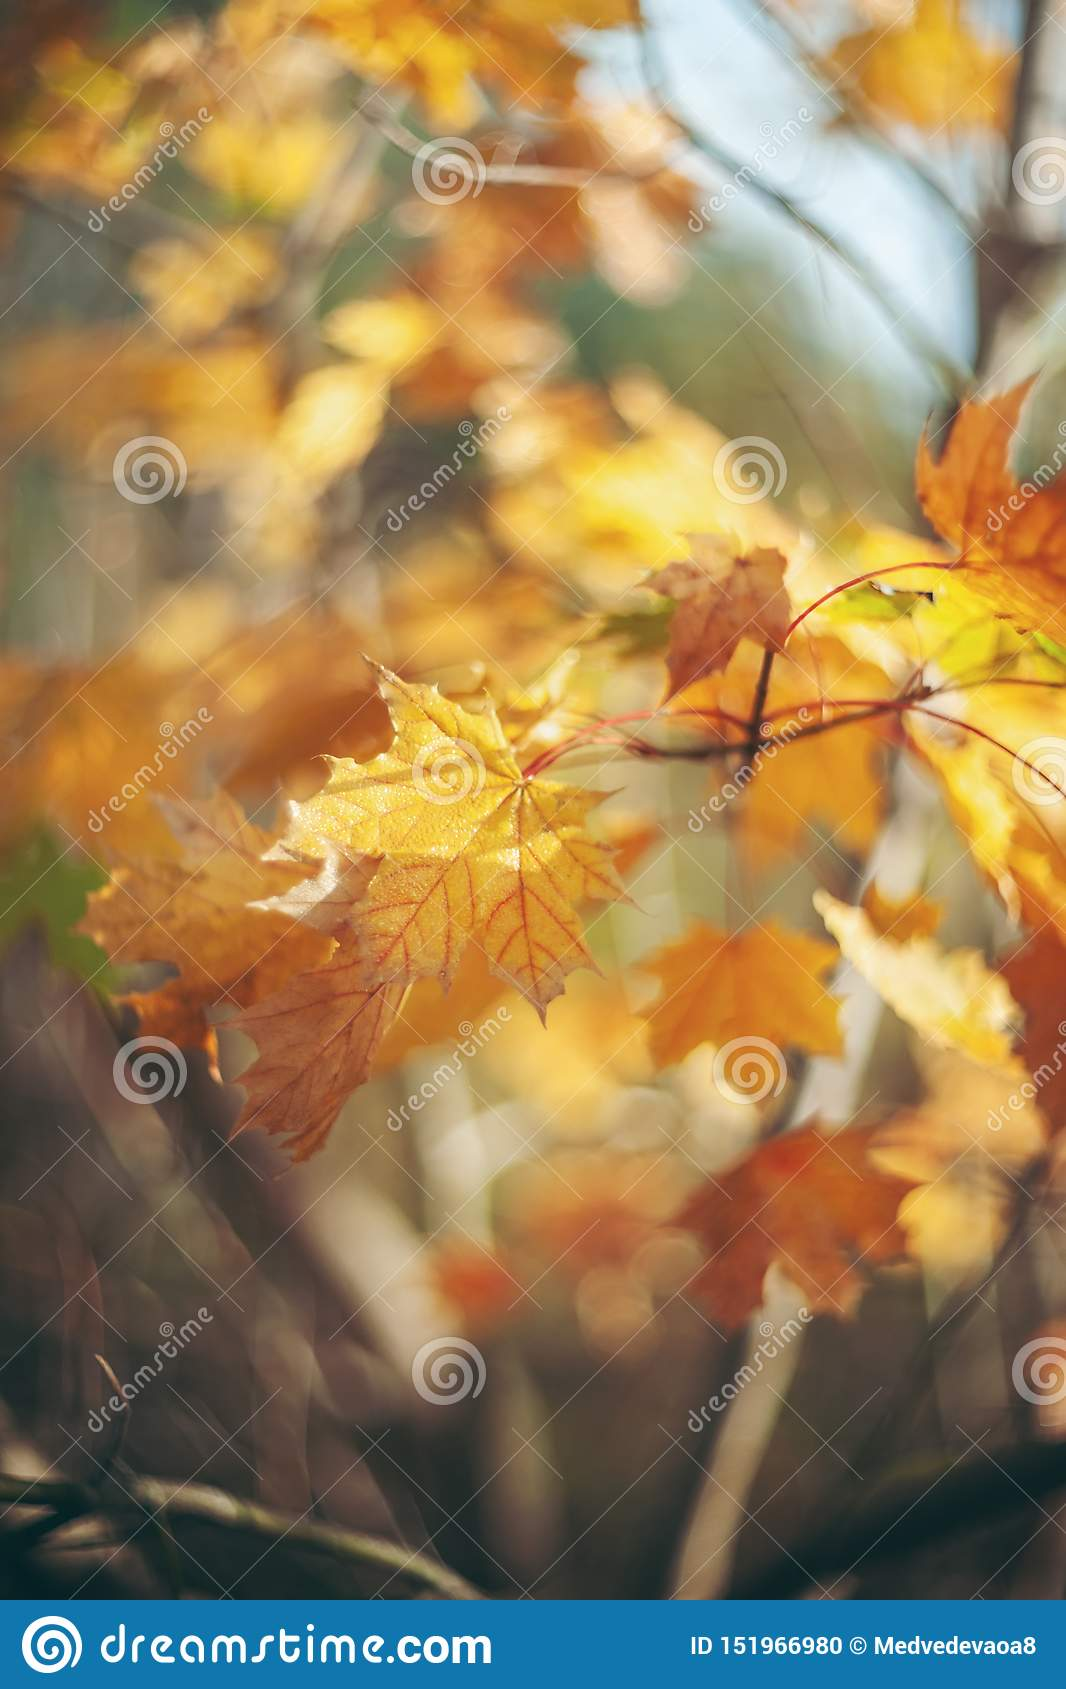 Yellow autumn colors of foliage. Branch with yellow leaves on a blurred background. Copy space. Background. Blur